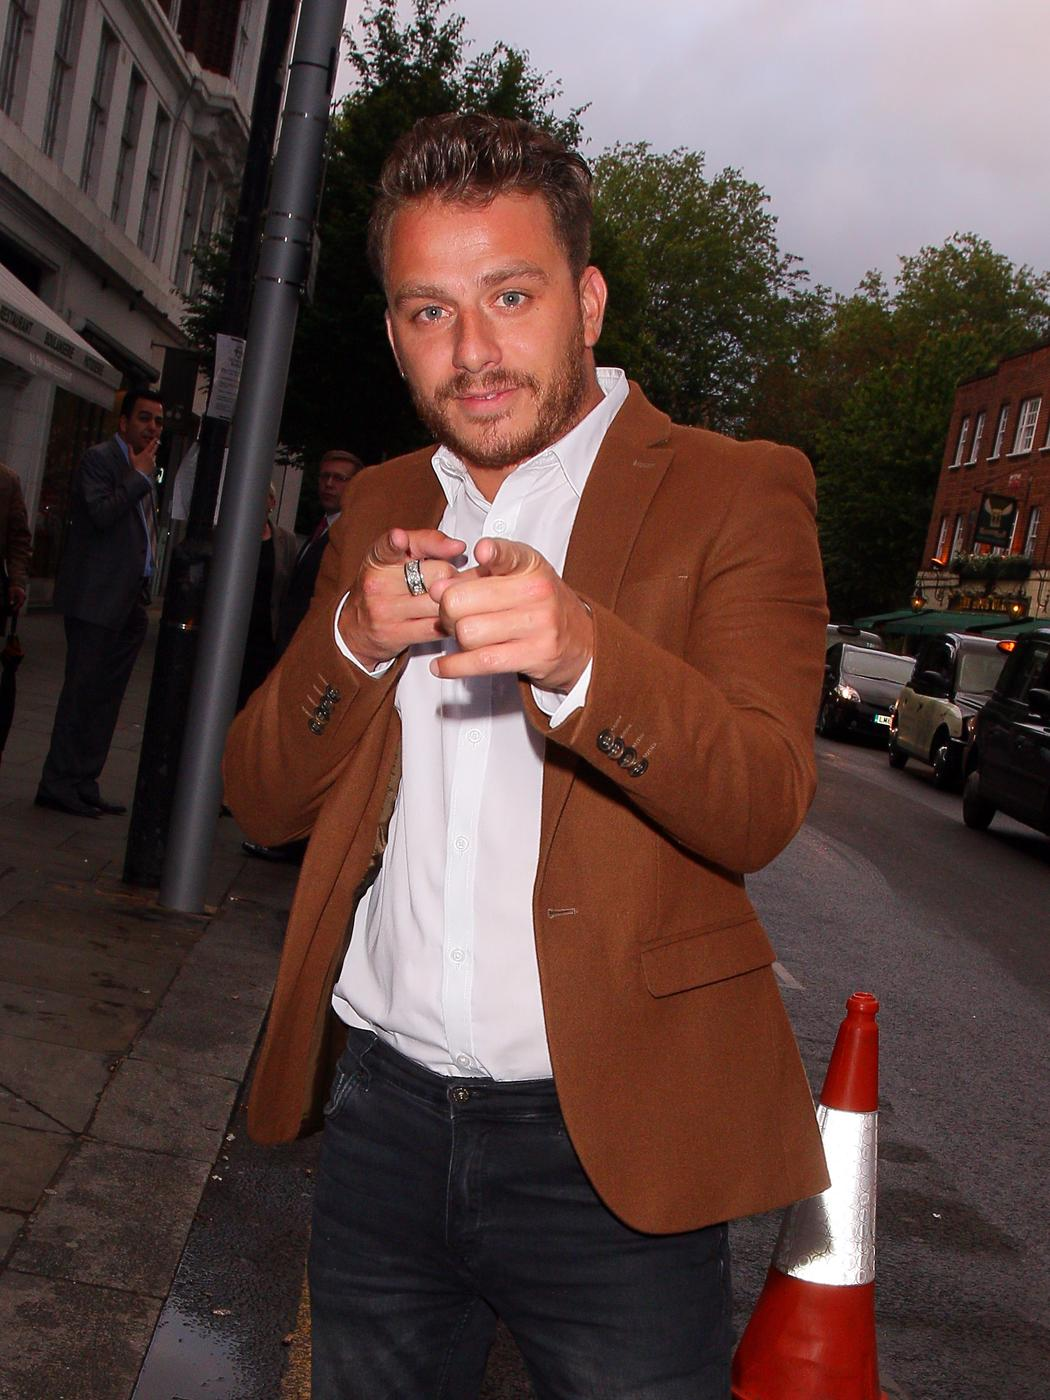 Dapper Laughs' apology doesn't go nearly far enough